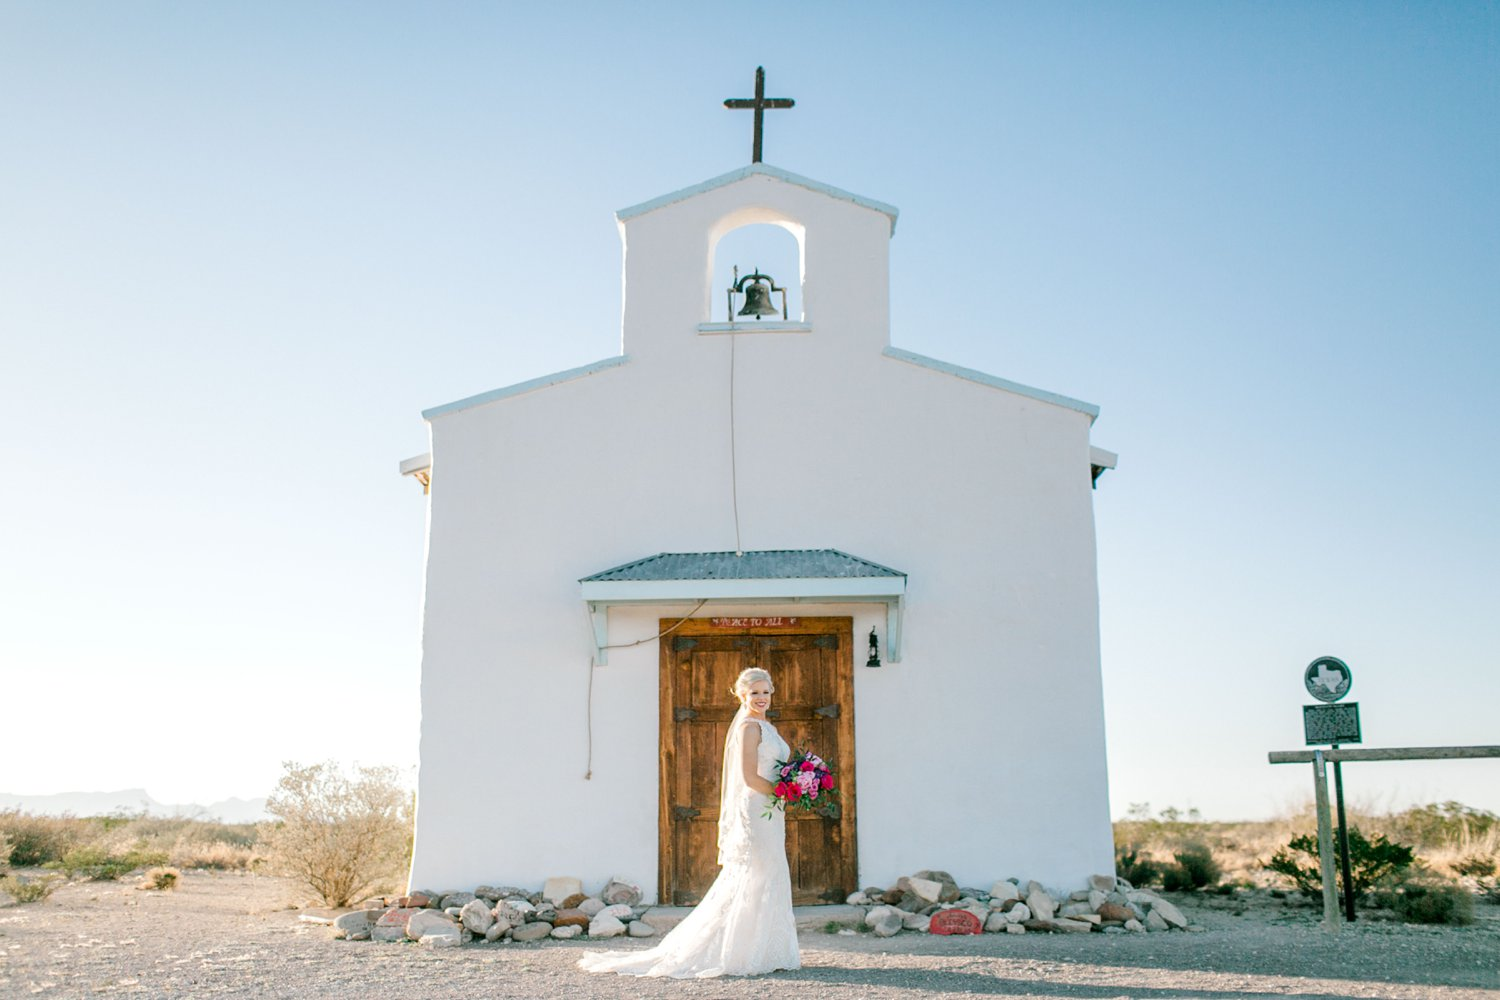 Jenna-evans-bridals-balmorhea-texas-fort-davis-wedding-photographer-lubbock-photographer__0036.jpg